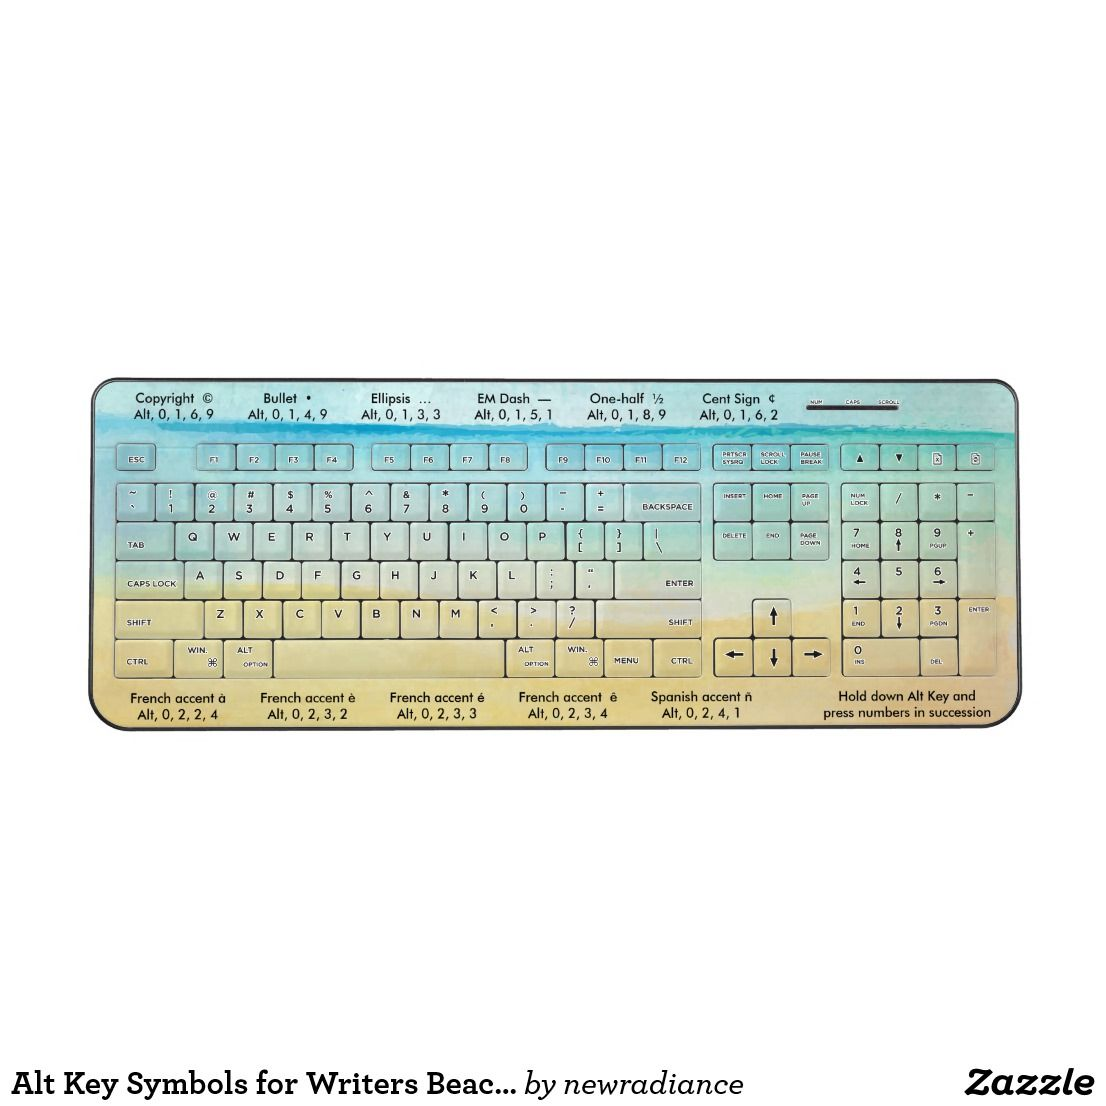 Alt key symbols for writers beach scene wireless keyboard common alt key symbols for writers beach scene wireless keyboard common keyboard symbols used by writers biocorpaavc Images